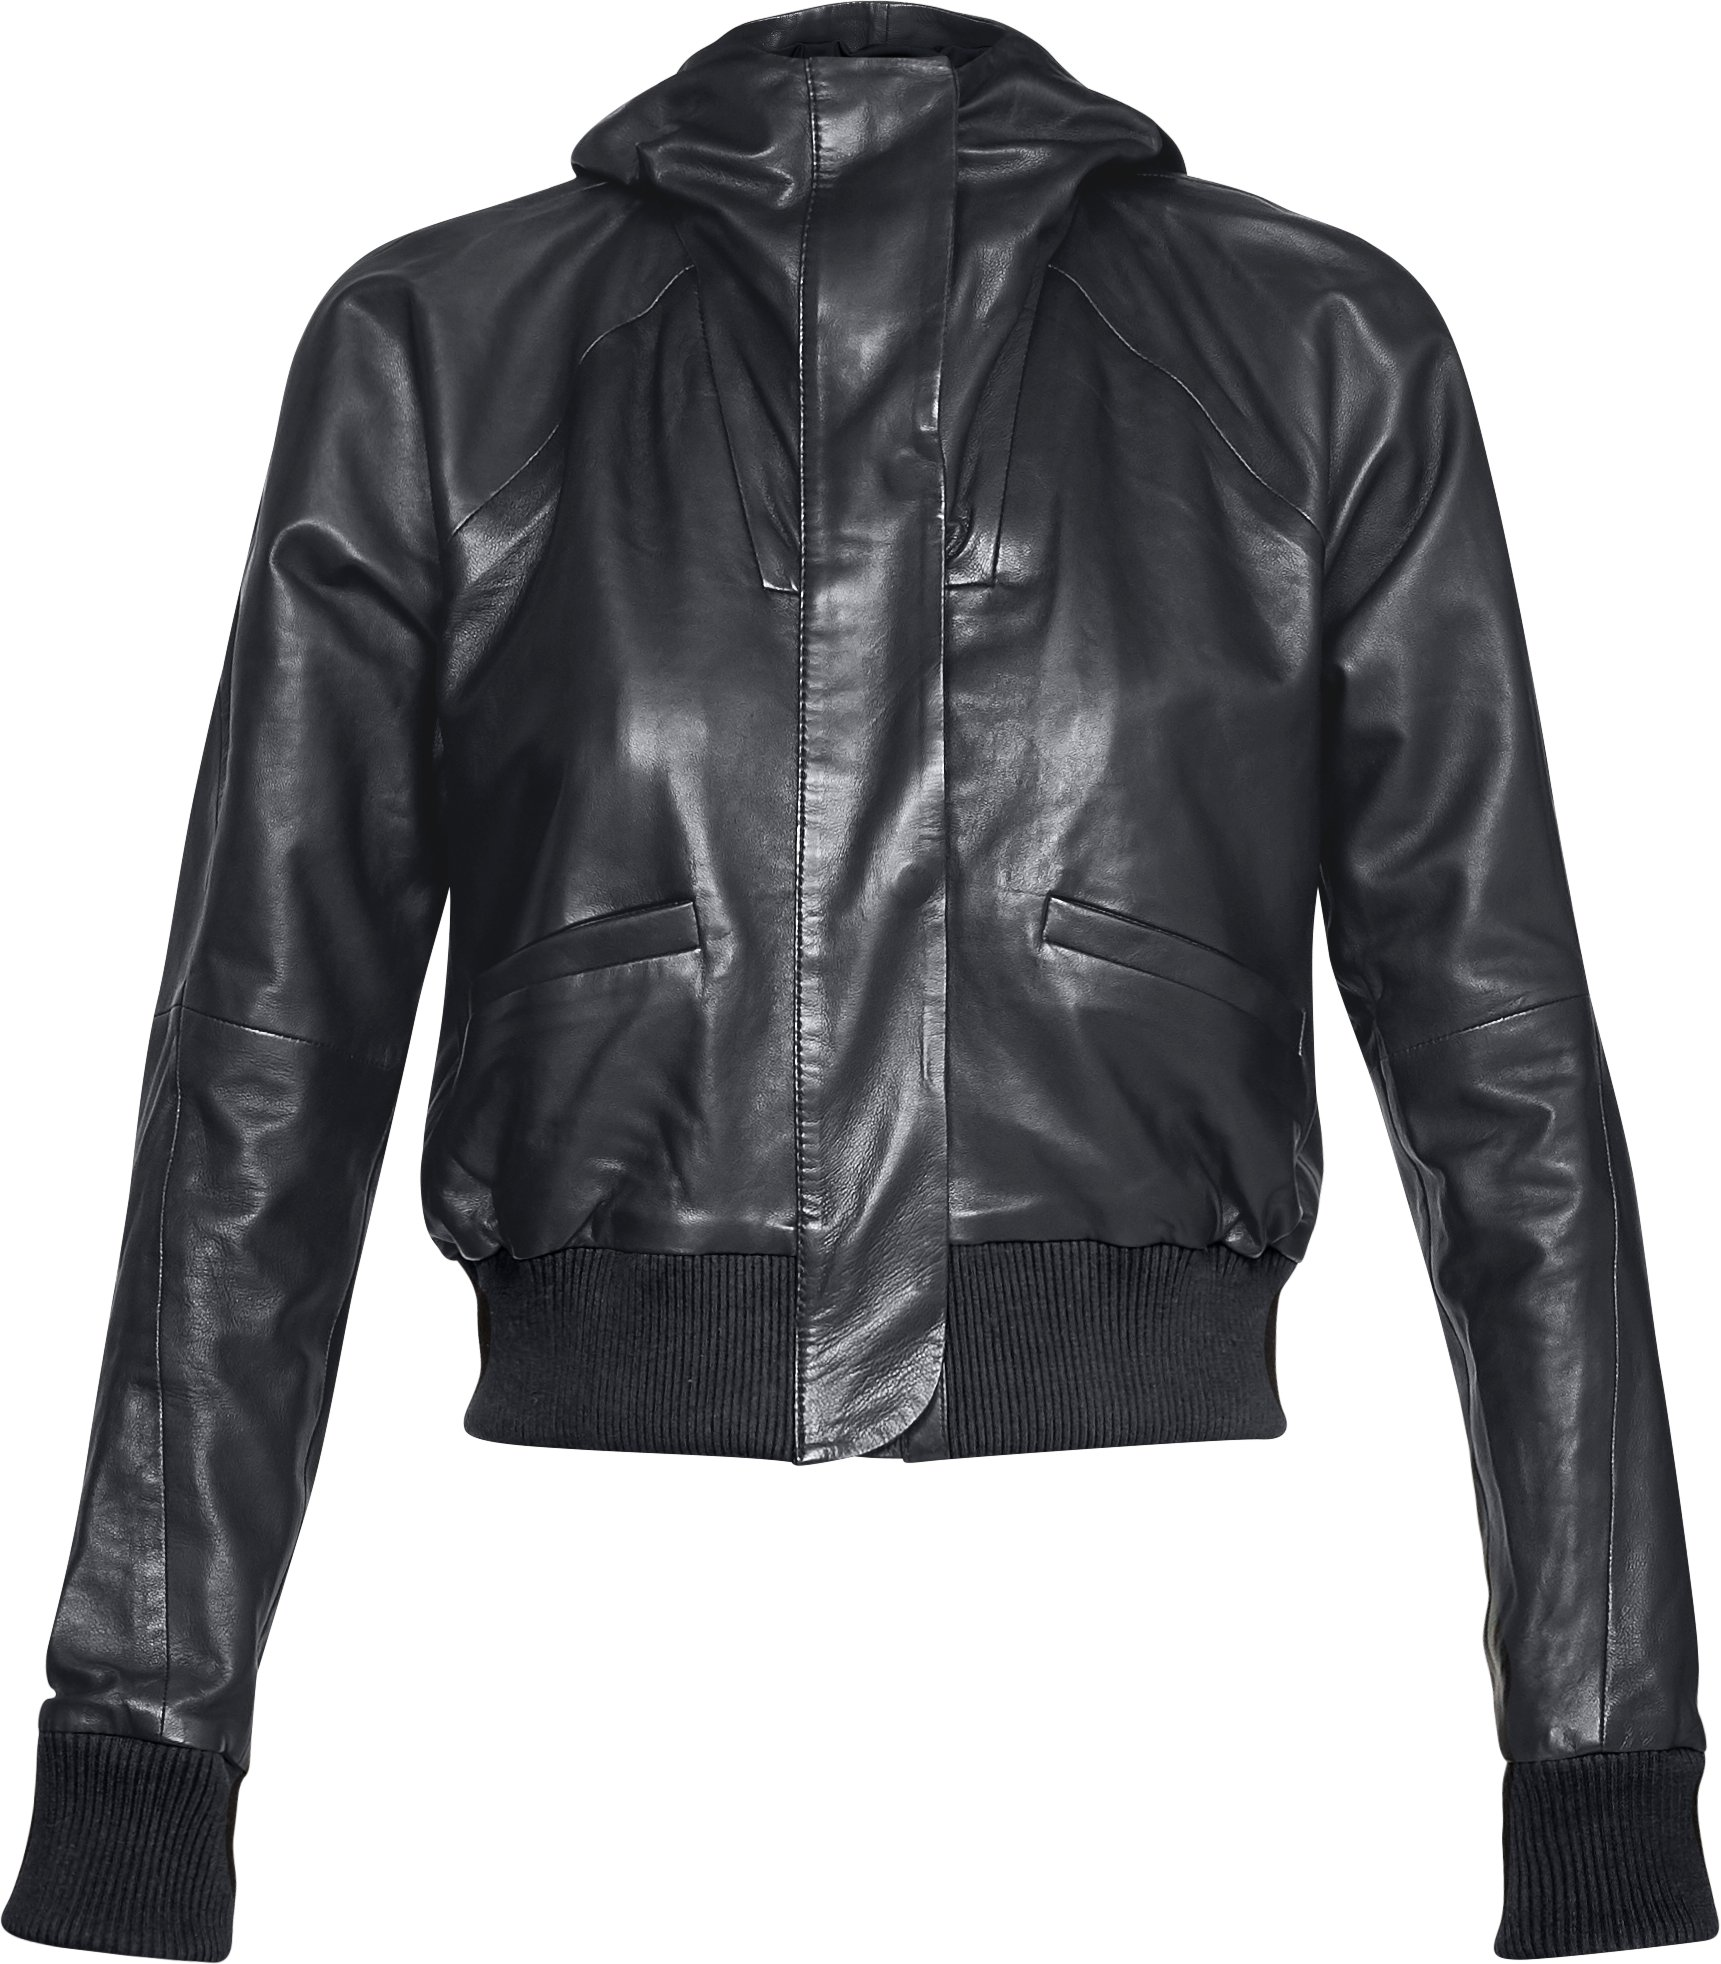 Women's UA Misty Copeland Signature Leather Bomber Jacket, Black ,